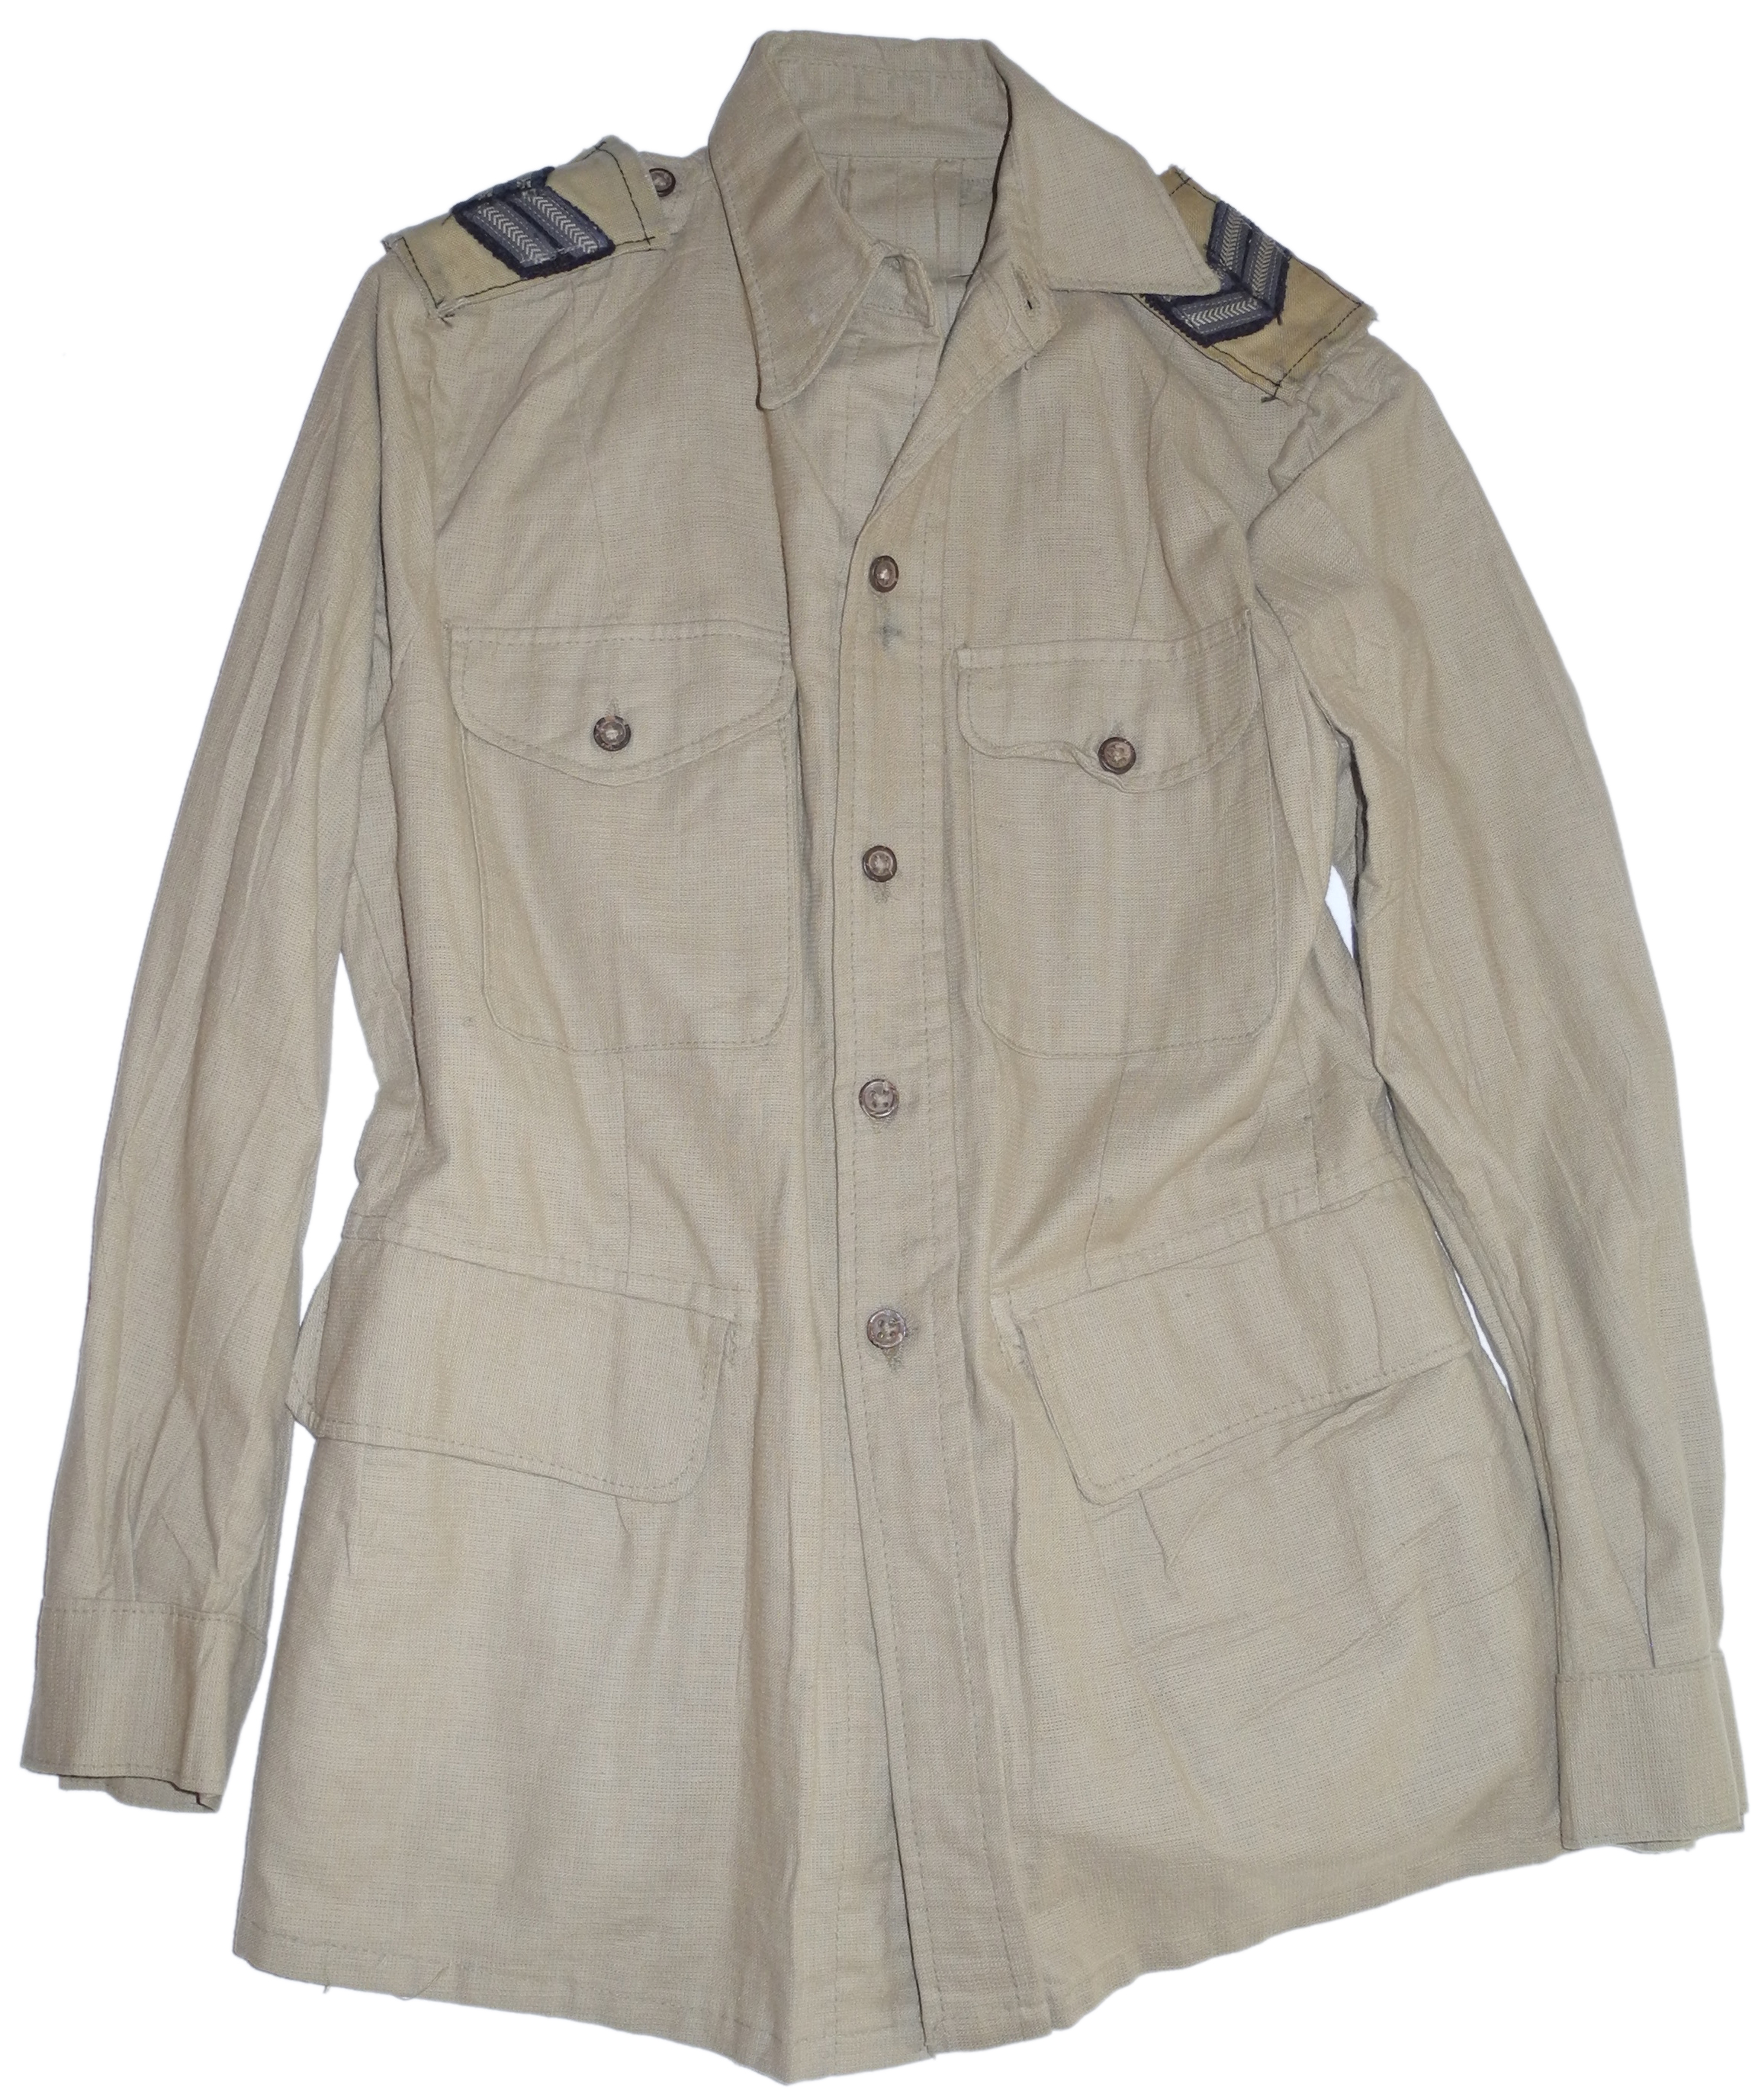 RAF bush shirt with corporal's stripes rank slides, dated 1945